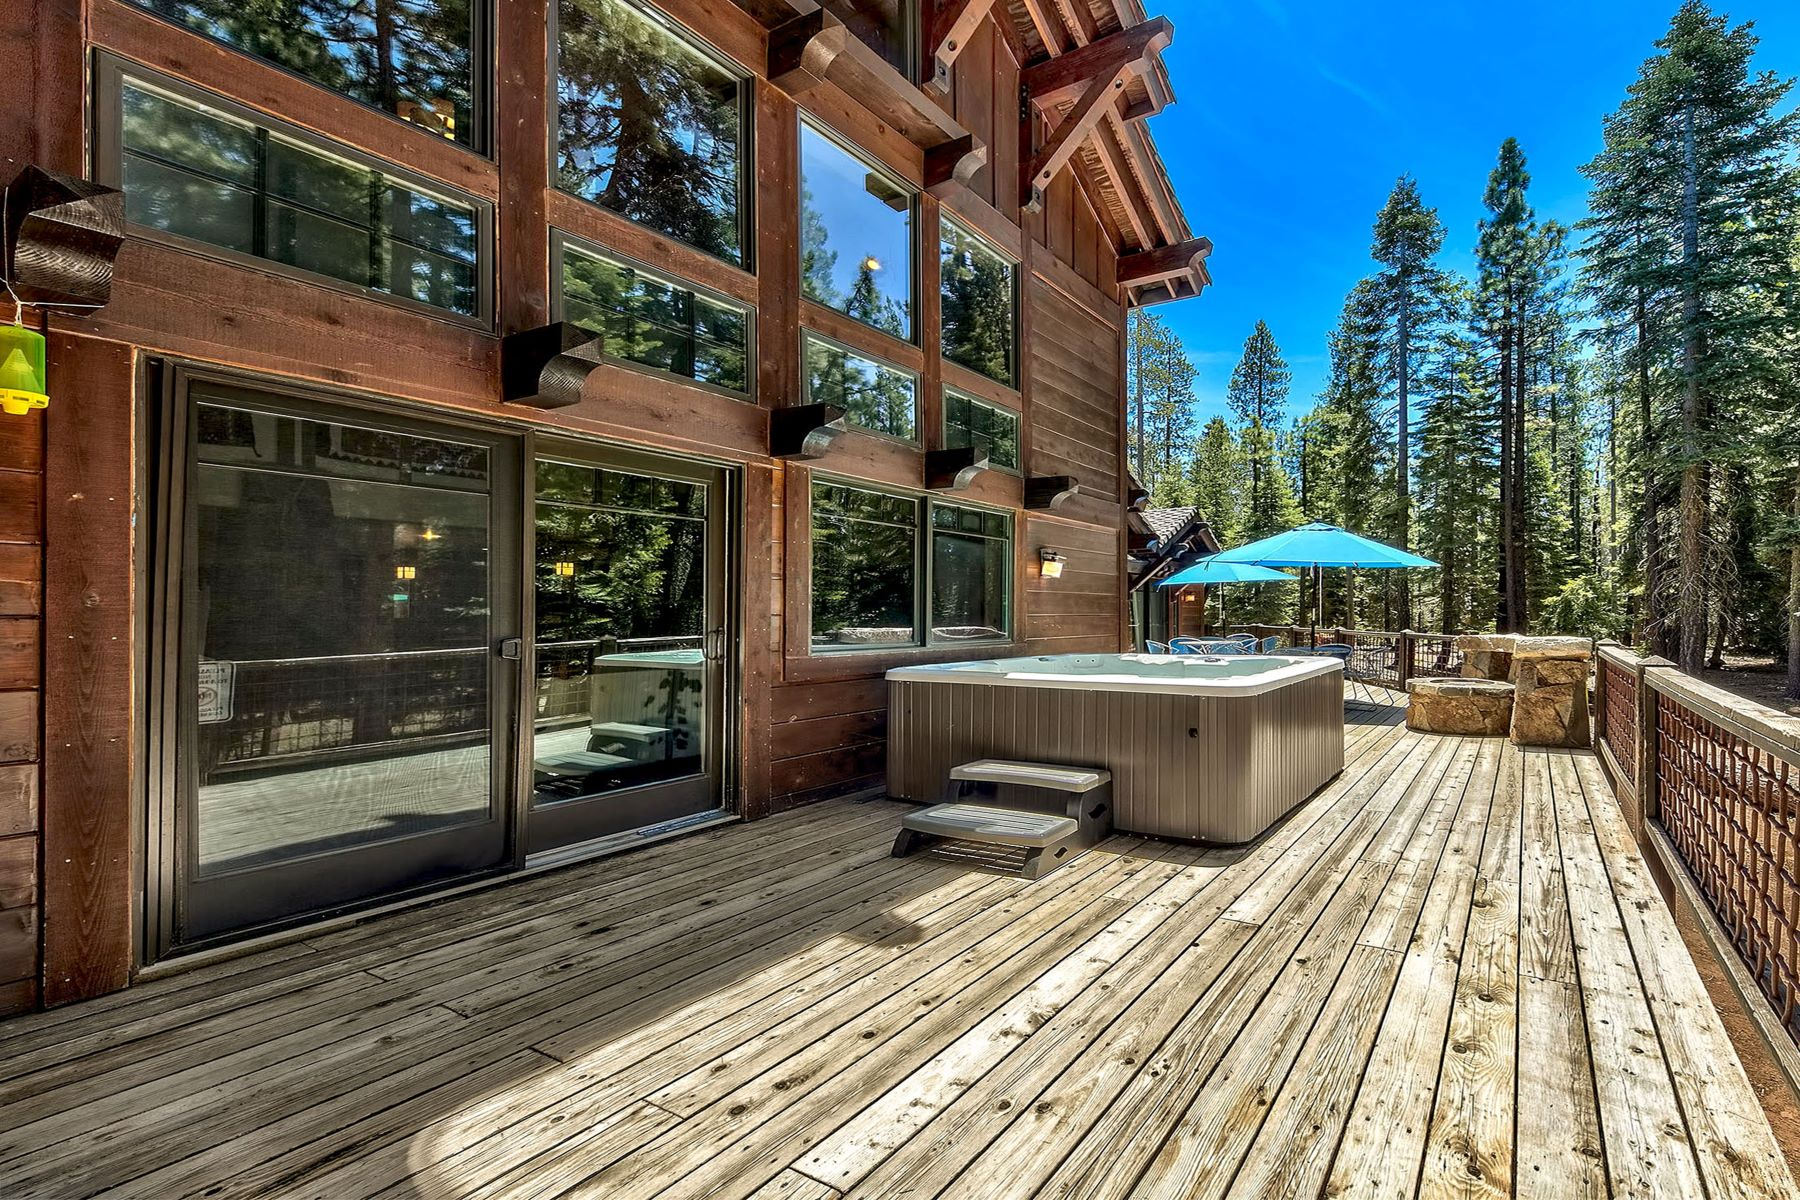 Additional photo for property listing at 4 Bed 3 Bath Home on 10.98 Acres 12115 Oslo Drive Truckee, California 96161 United States